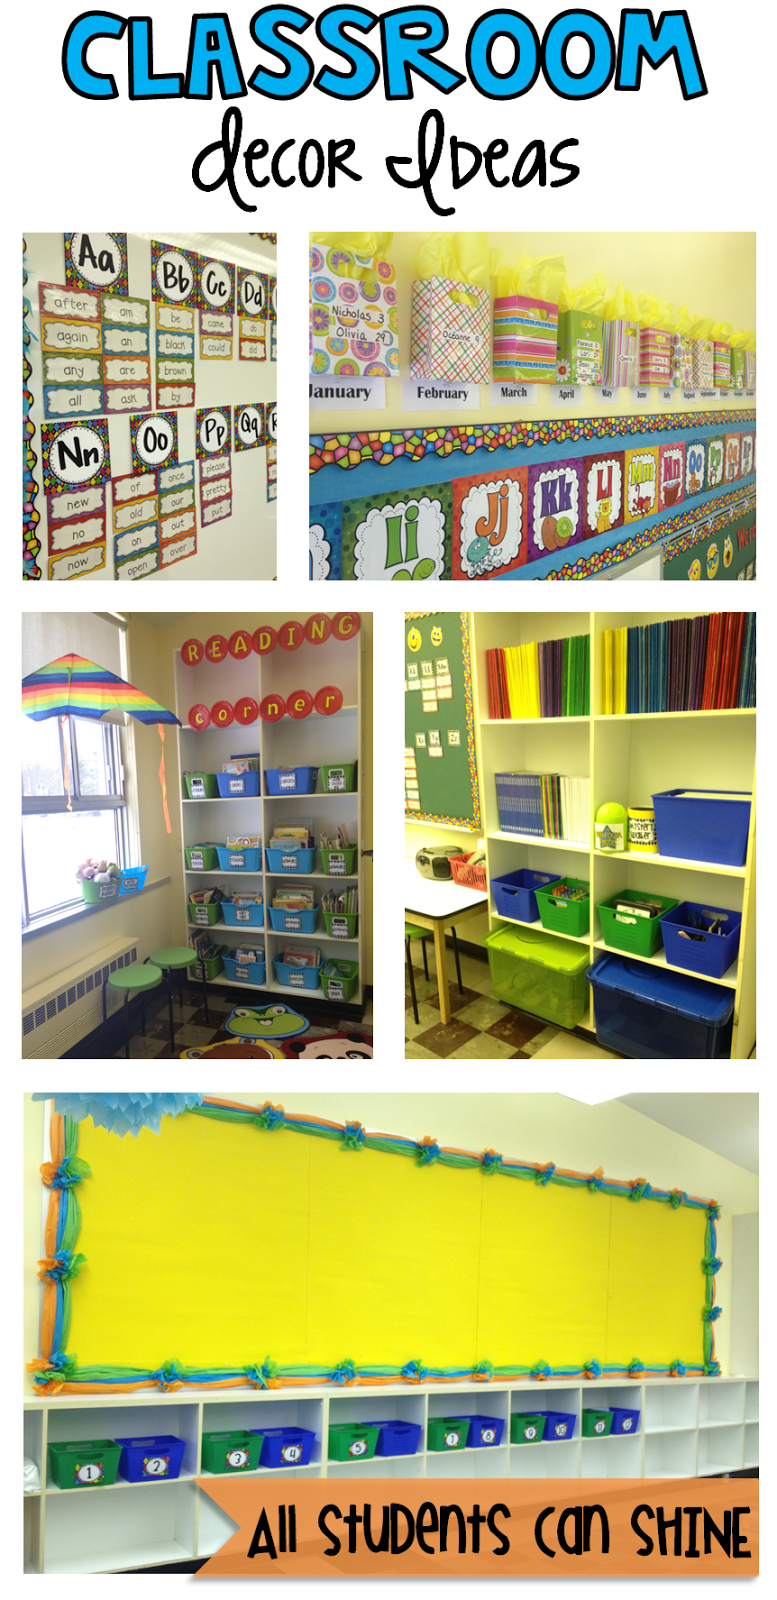 Classroom Decoration Images ~ Summer classroom ideas home design and decor reviews